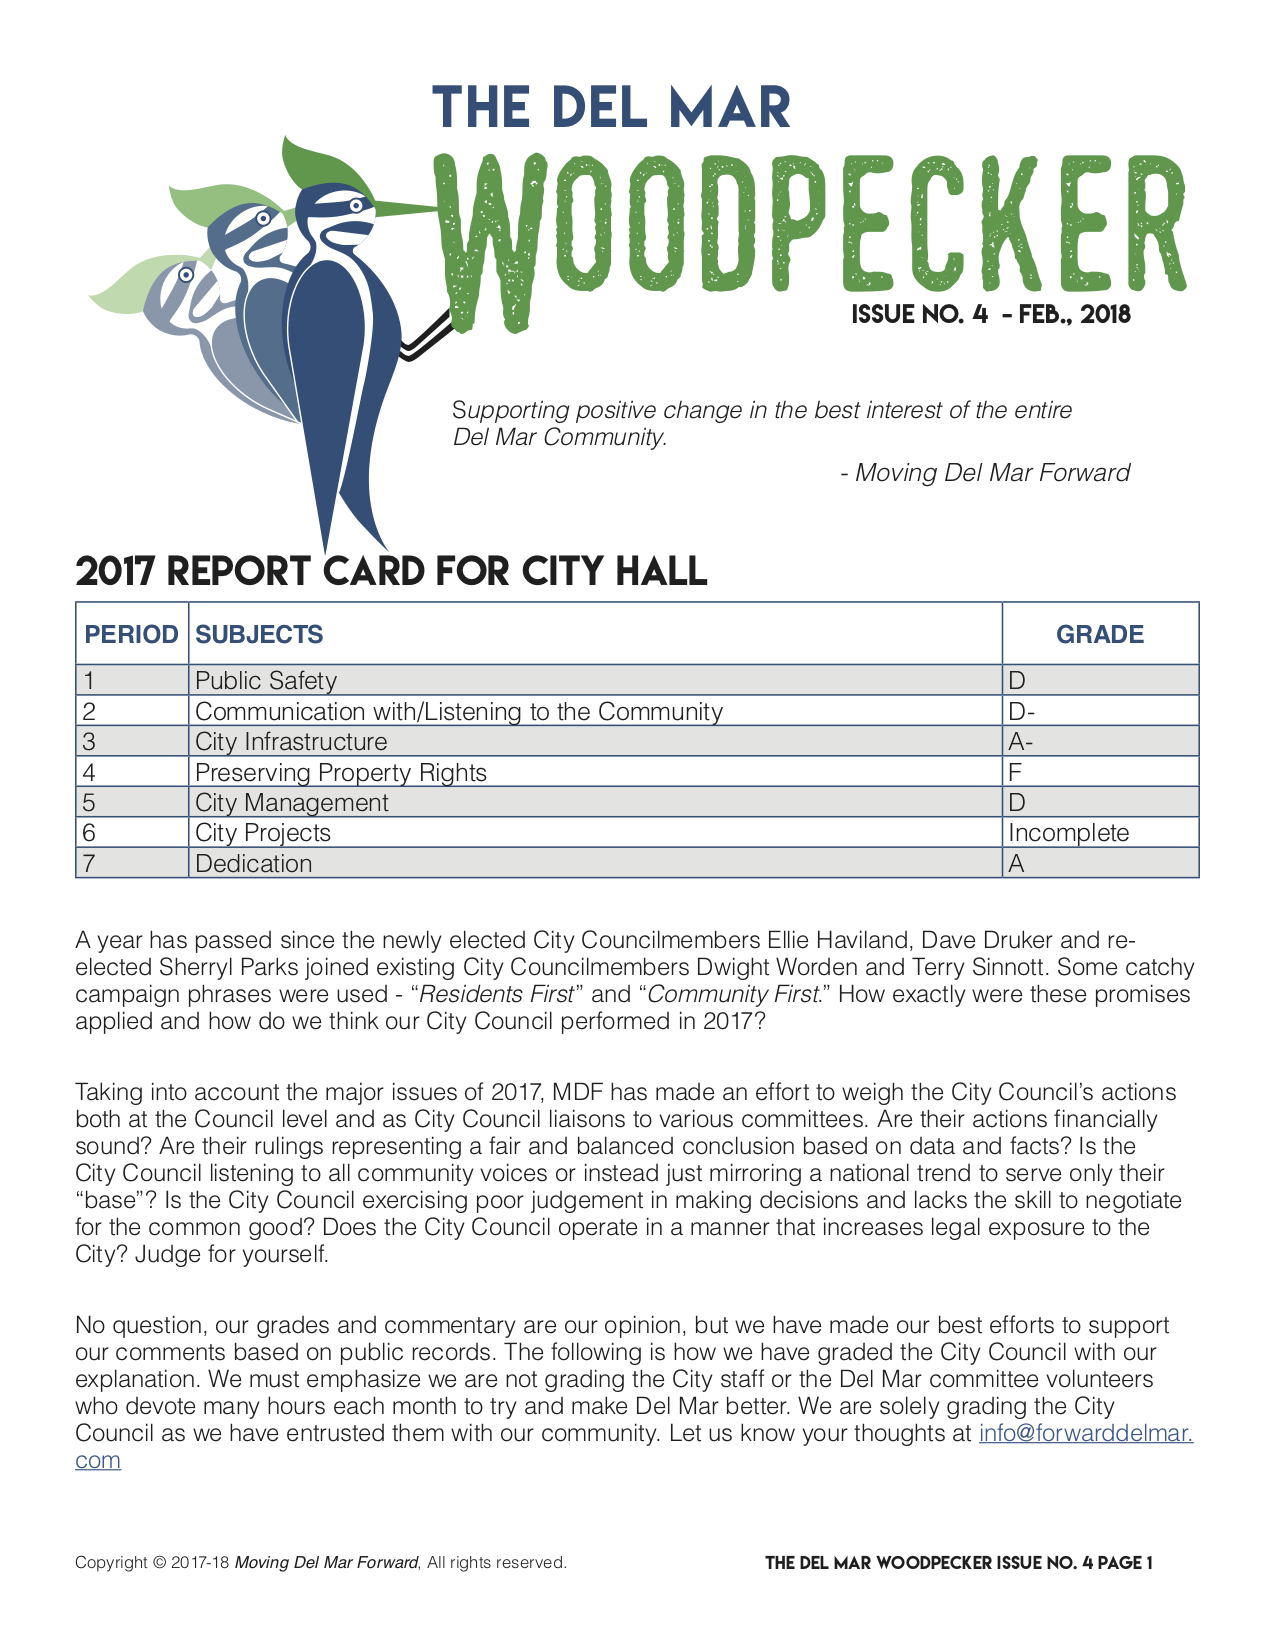 ISSUE NO. 4 February 2018 - 2017 Report Card for City Hall